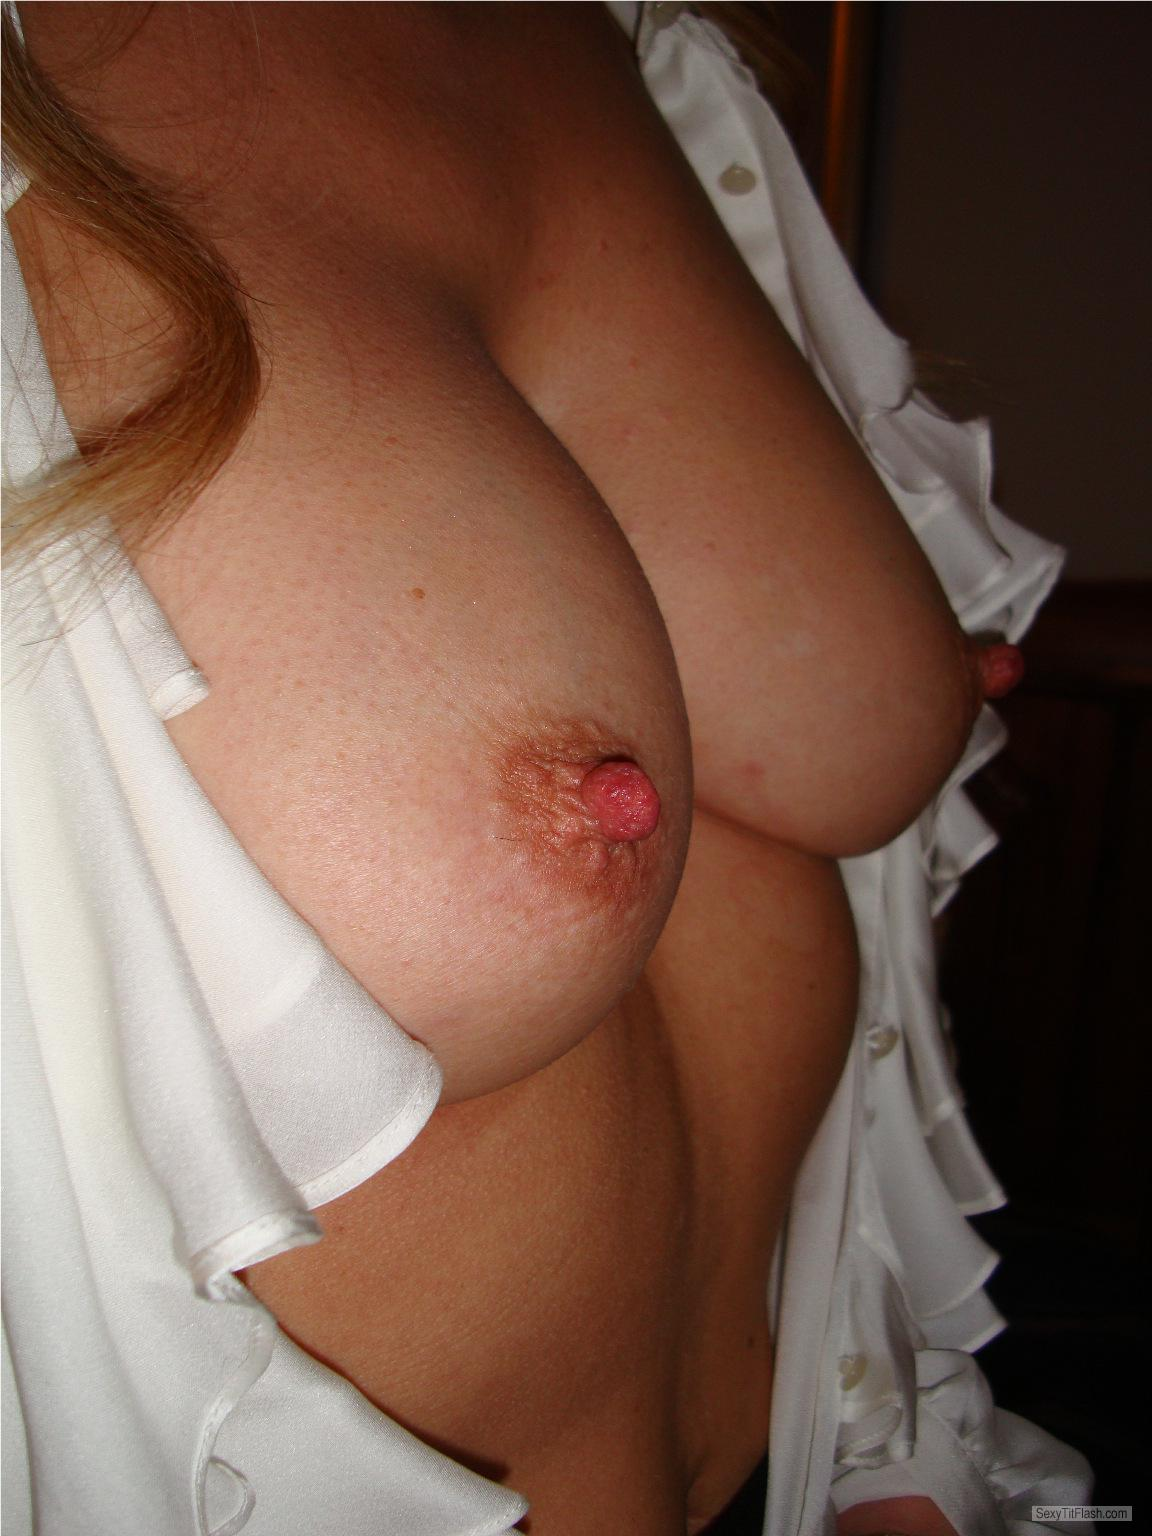 Tit Flash: My Medium Tits - Miss V from United States